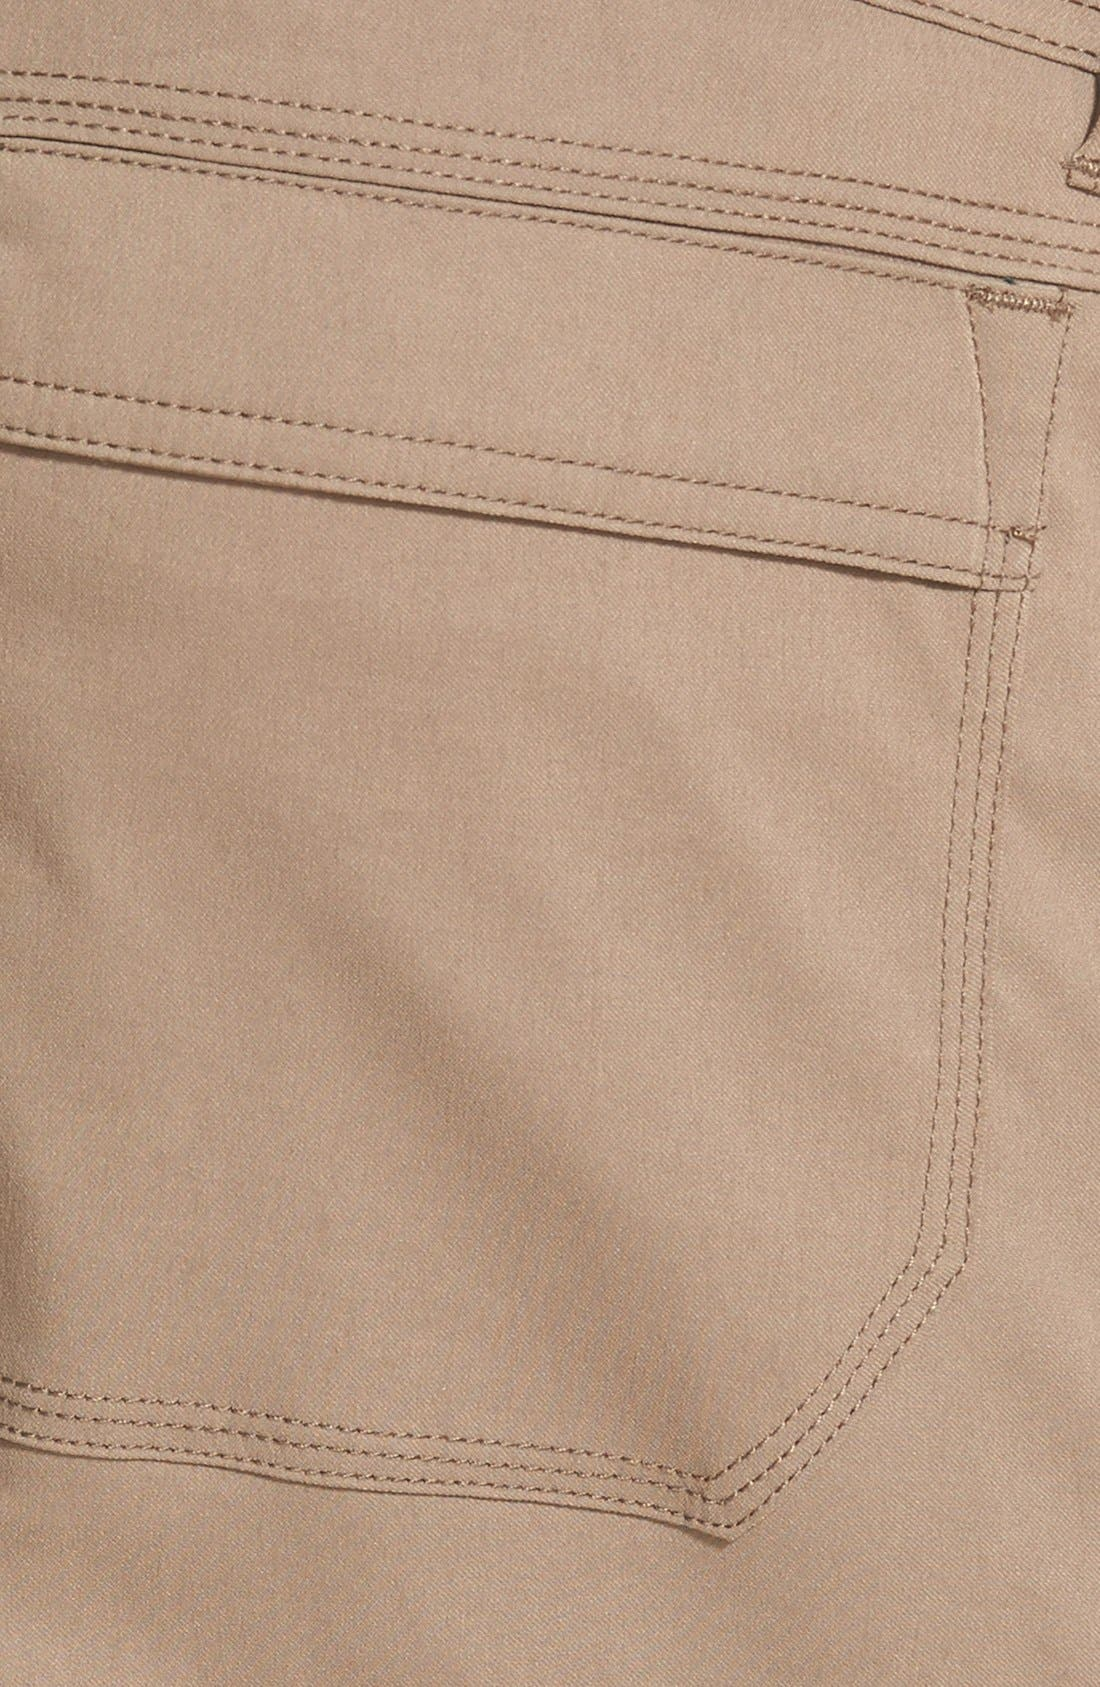 Alternate Image 3  - prAna 'Zion' Stretchy Hiking Pants